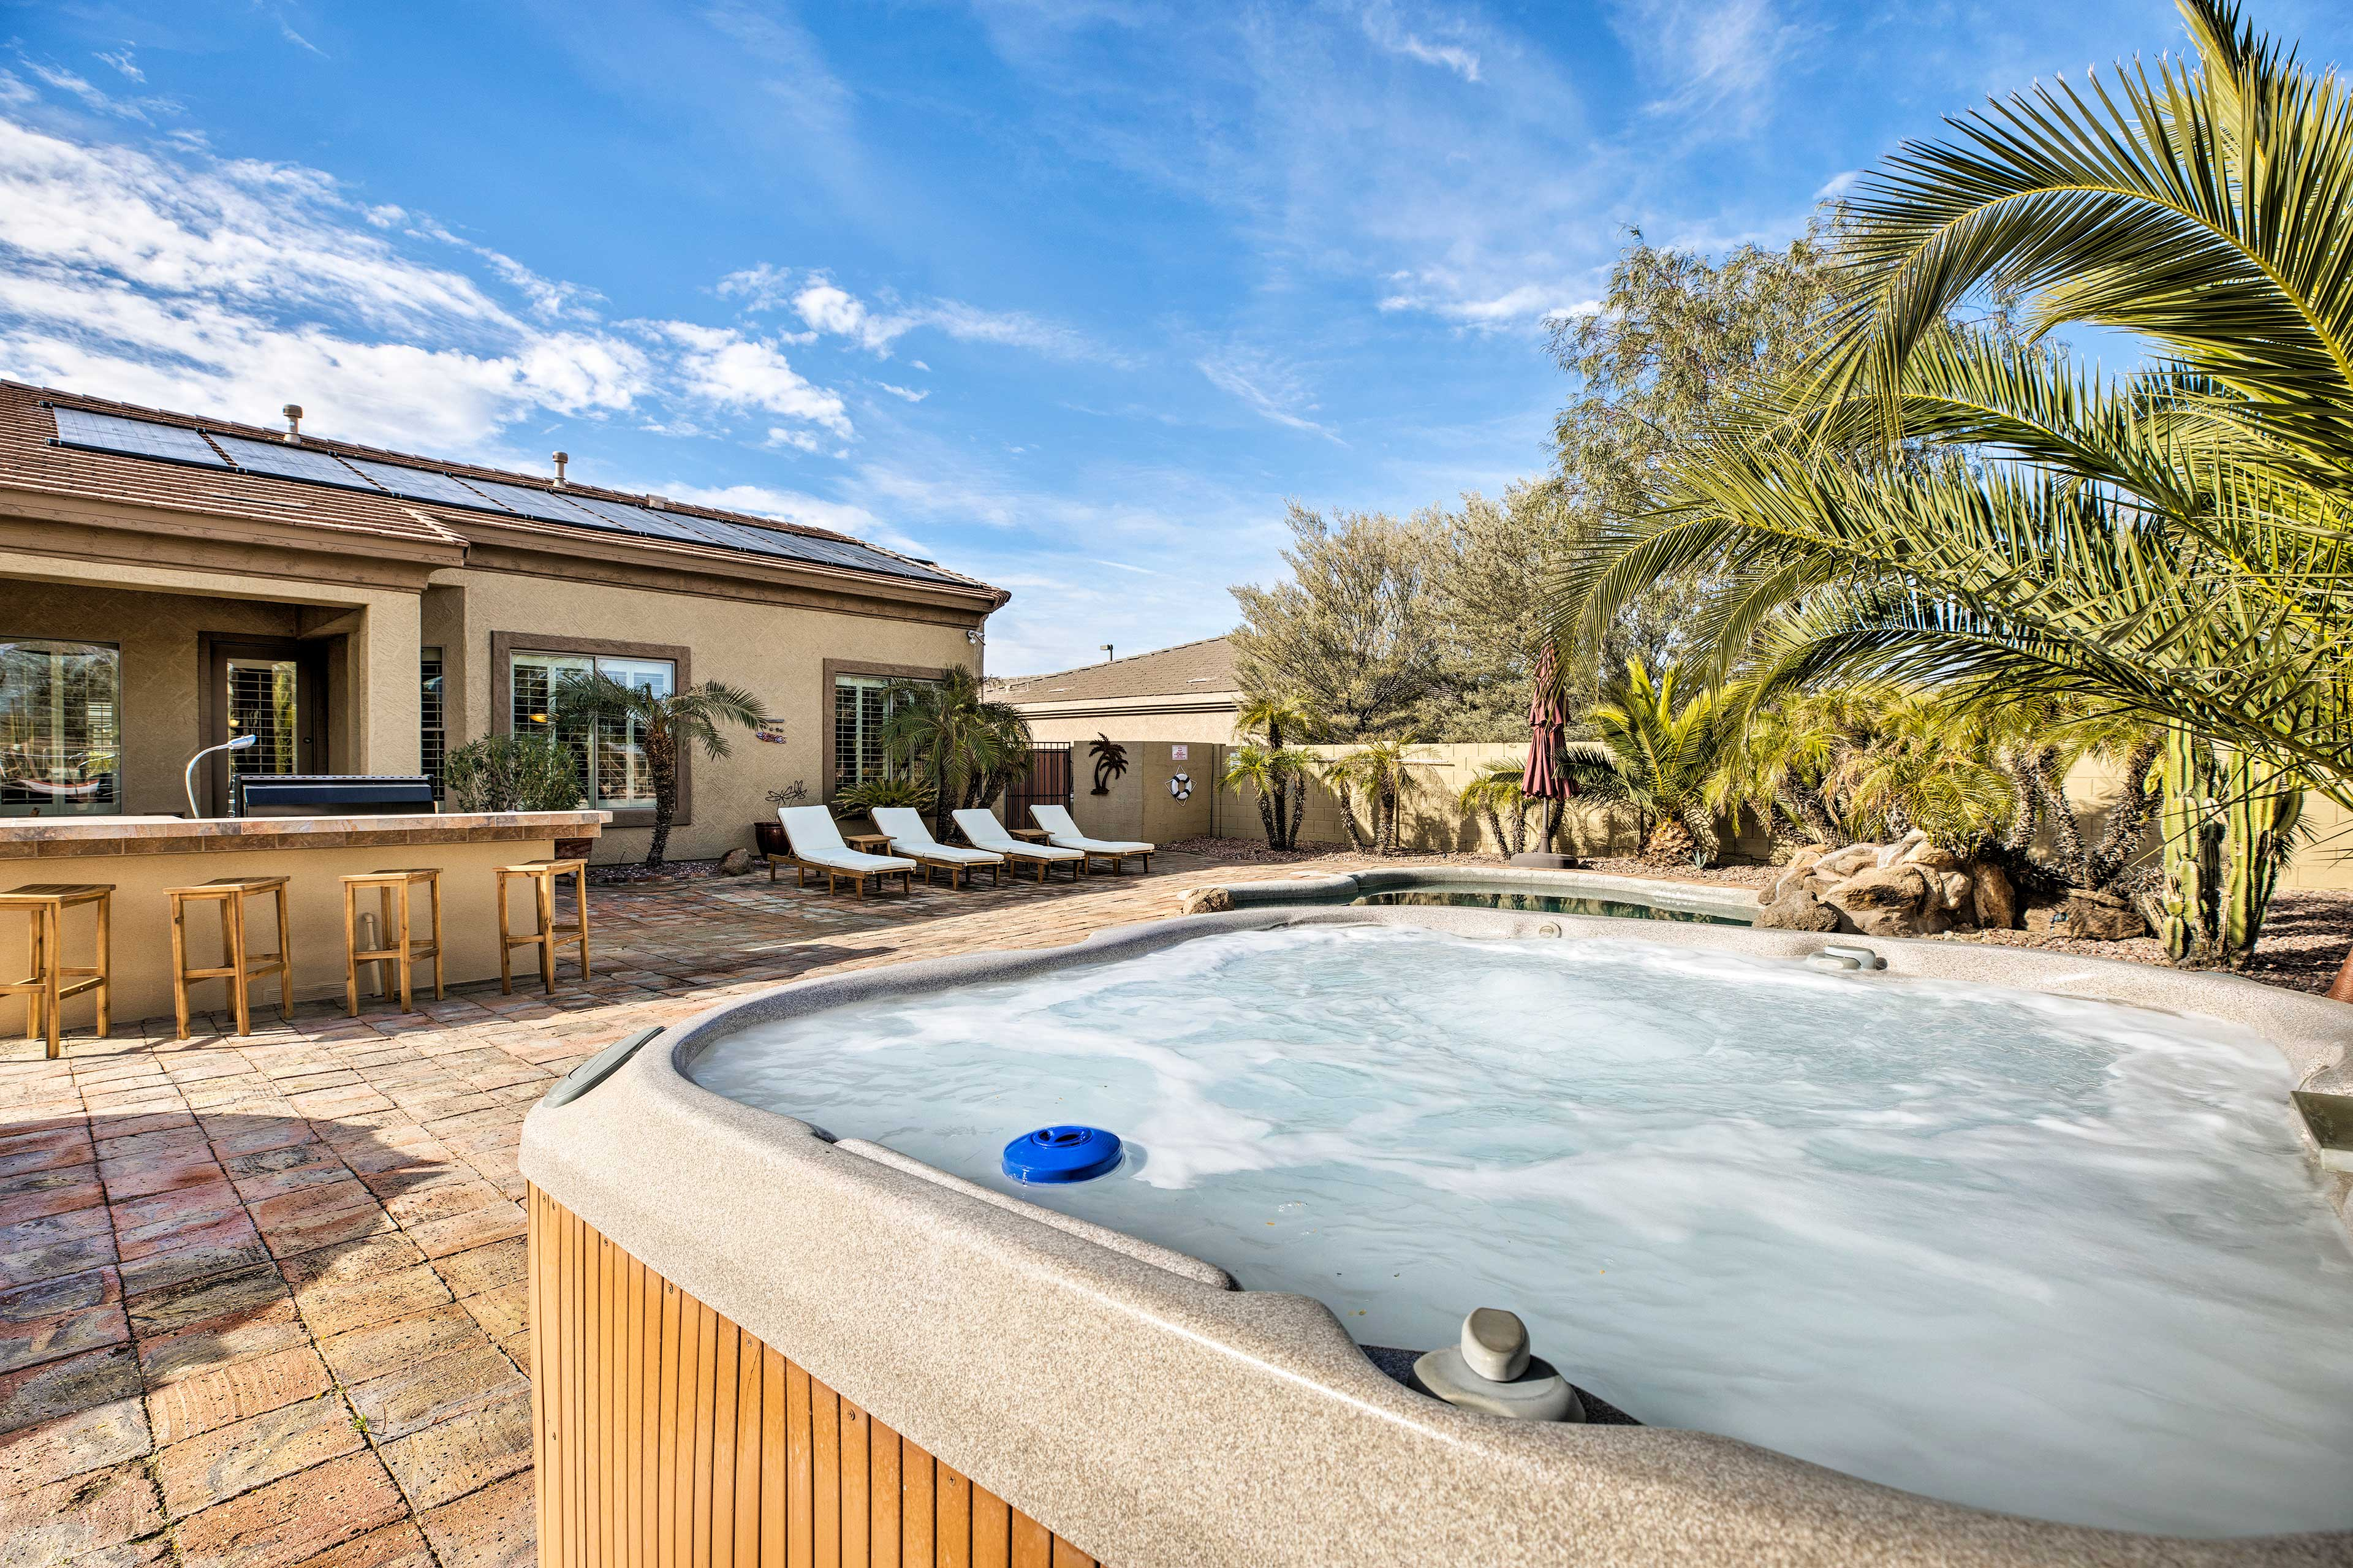 Relieve tension in the private hot tub.